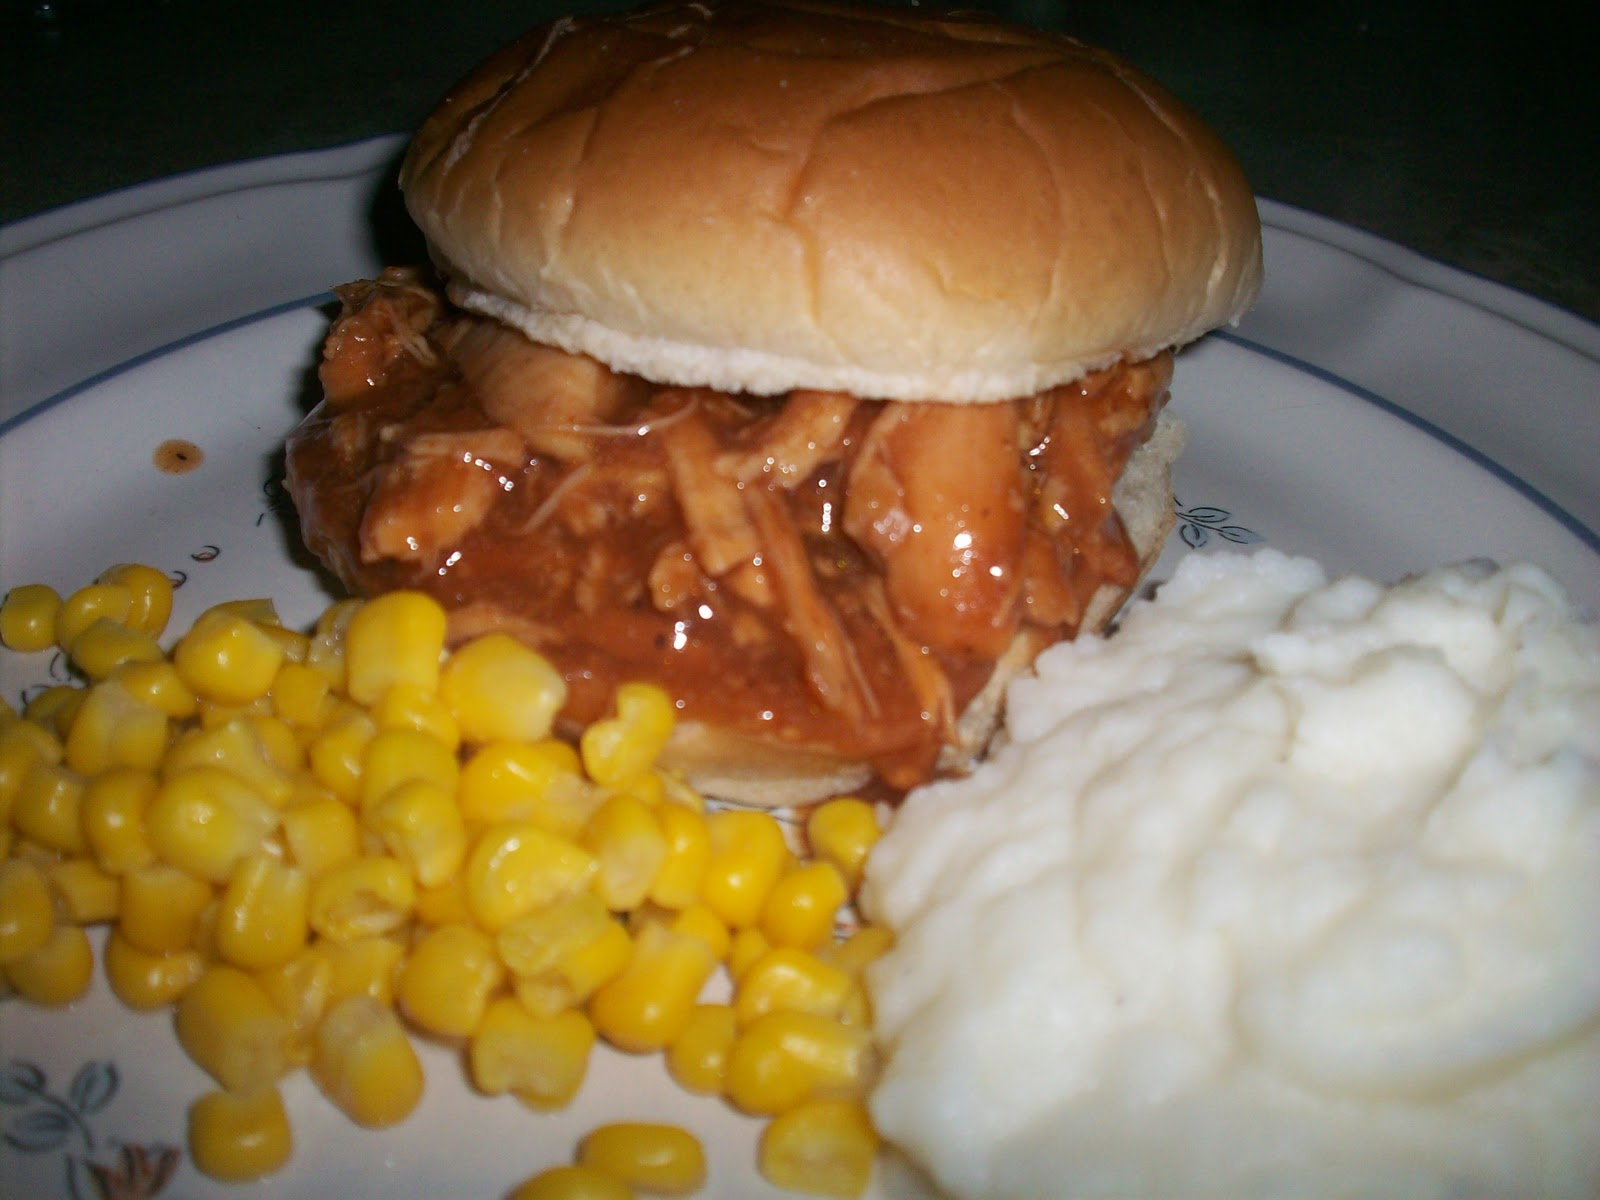 Honey barbecued chicken for sandwiches crock pot recipe exchange